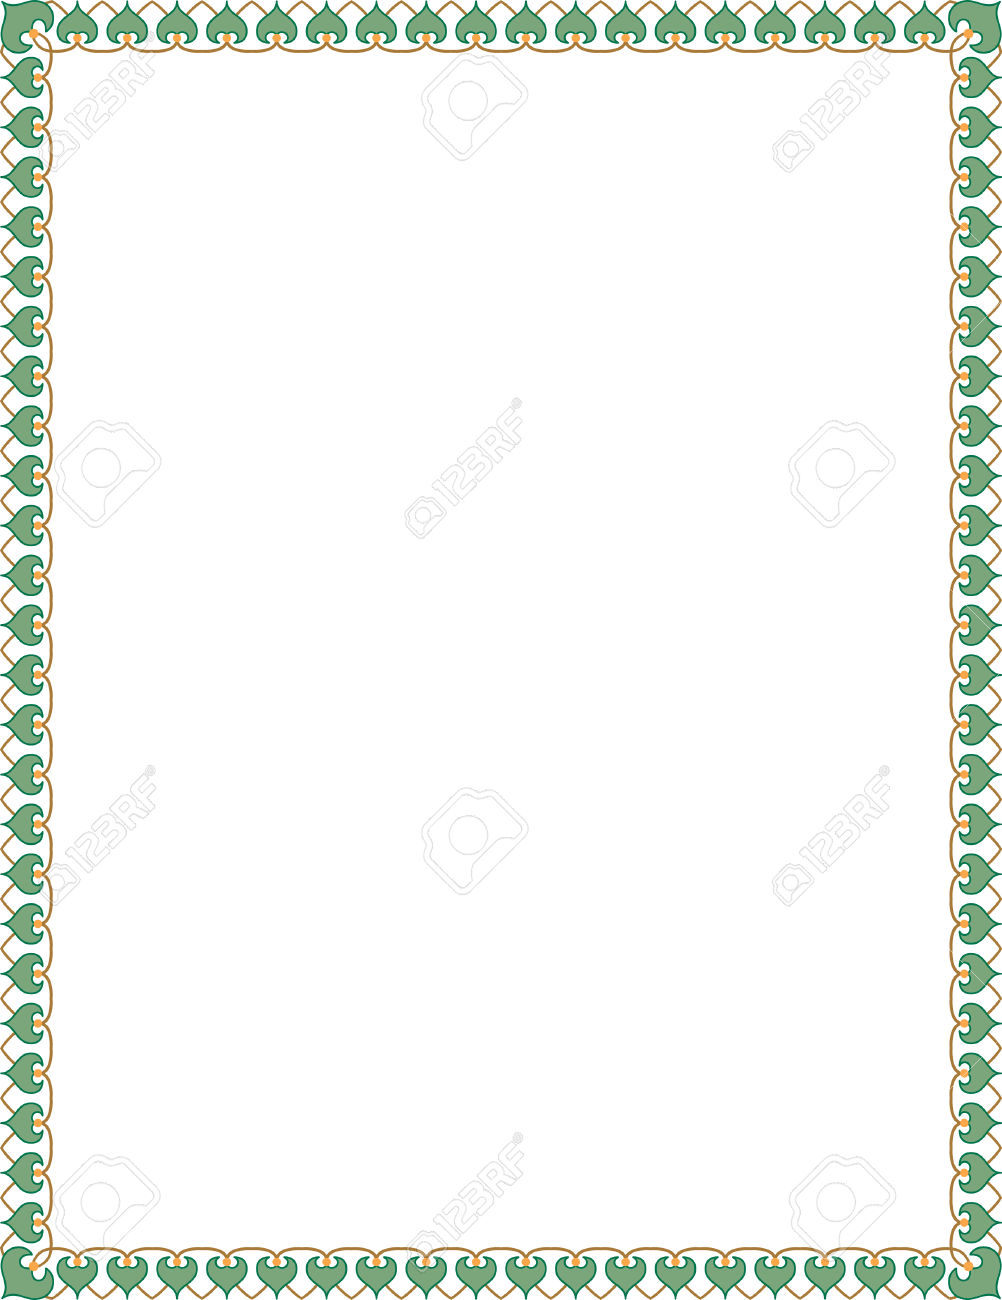 Simple Tiling Thin Frame, Colored Royalty Free Cliparts, Vectors.